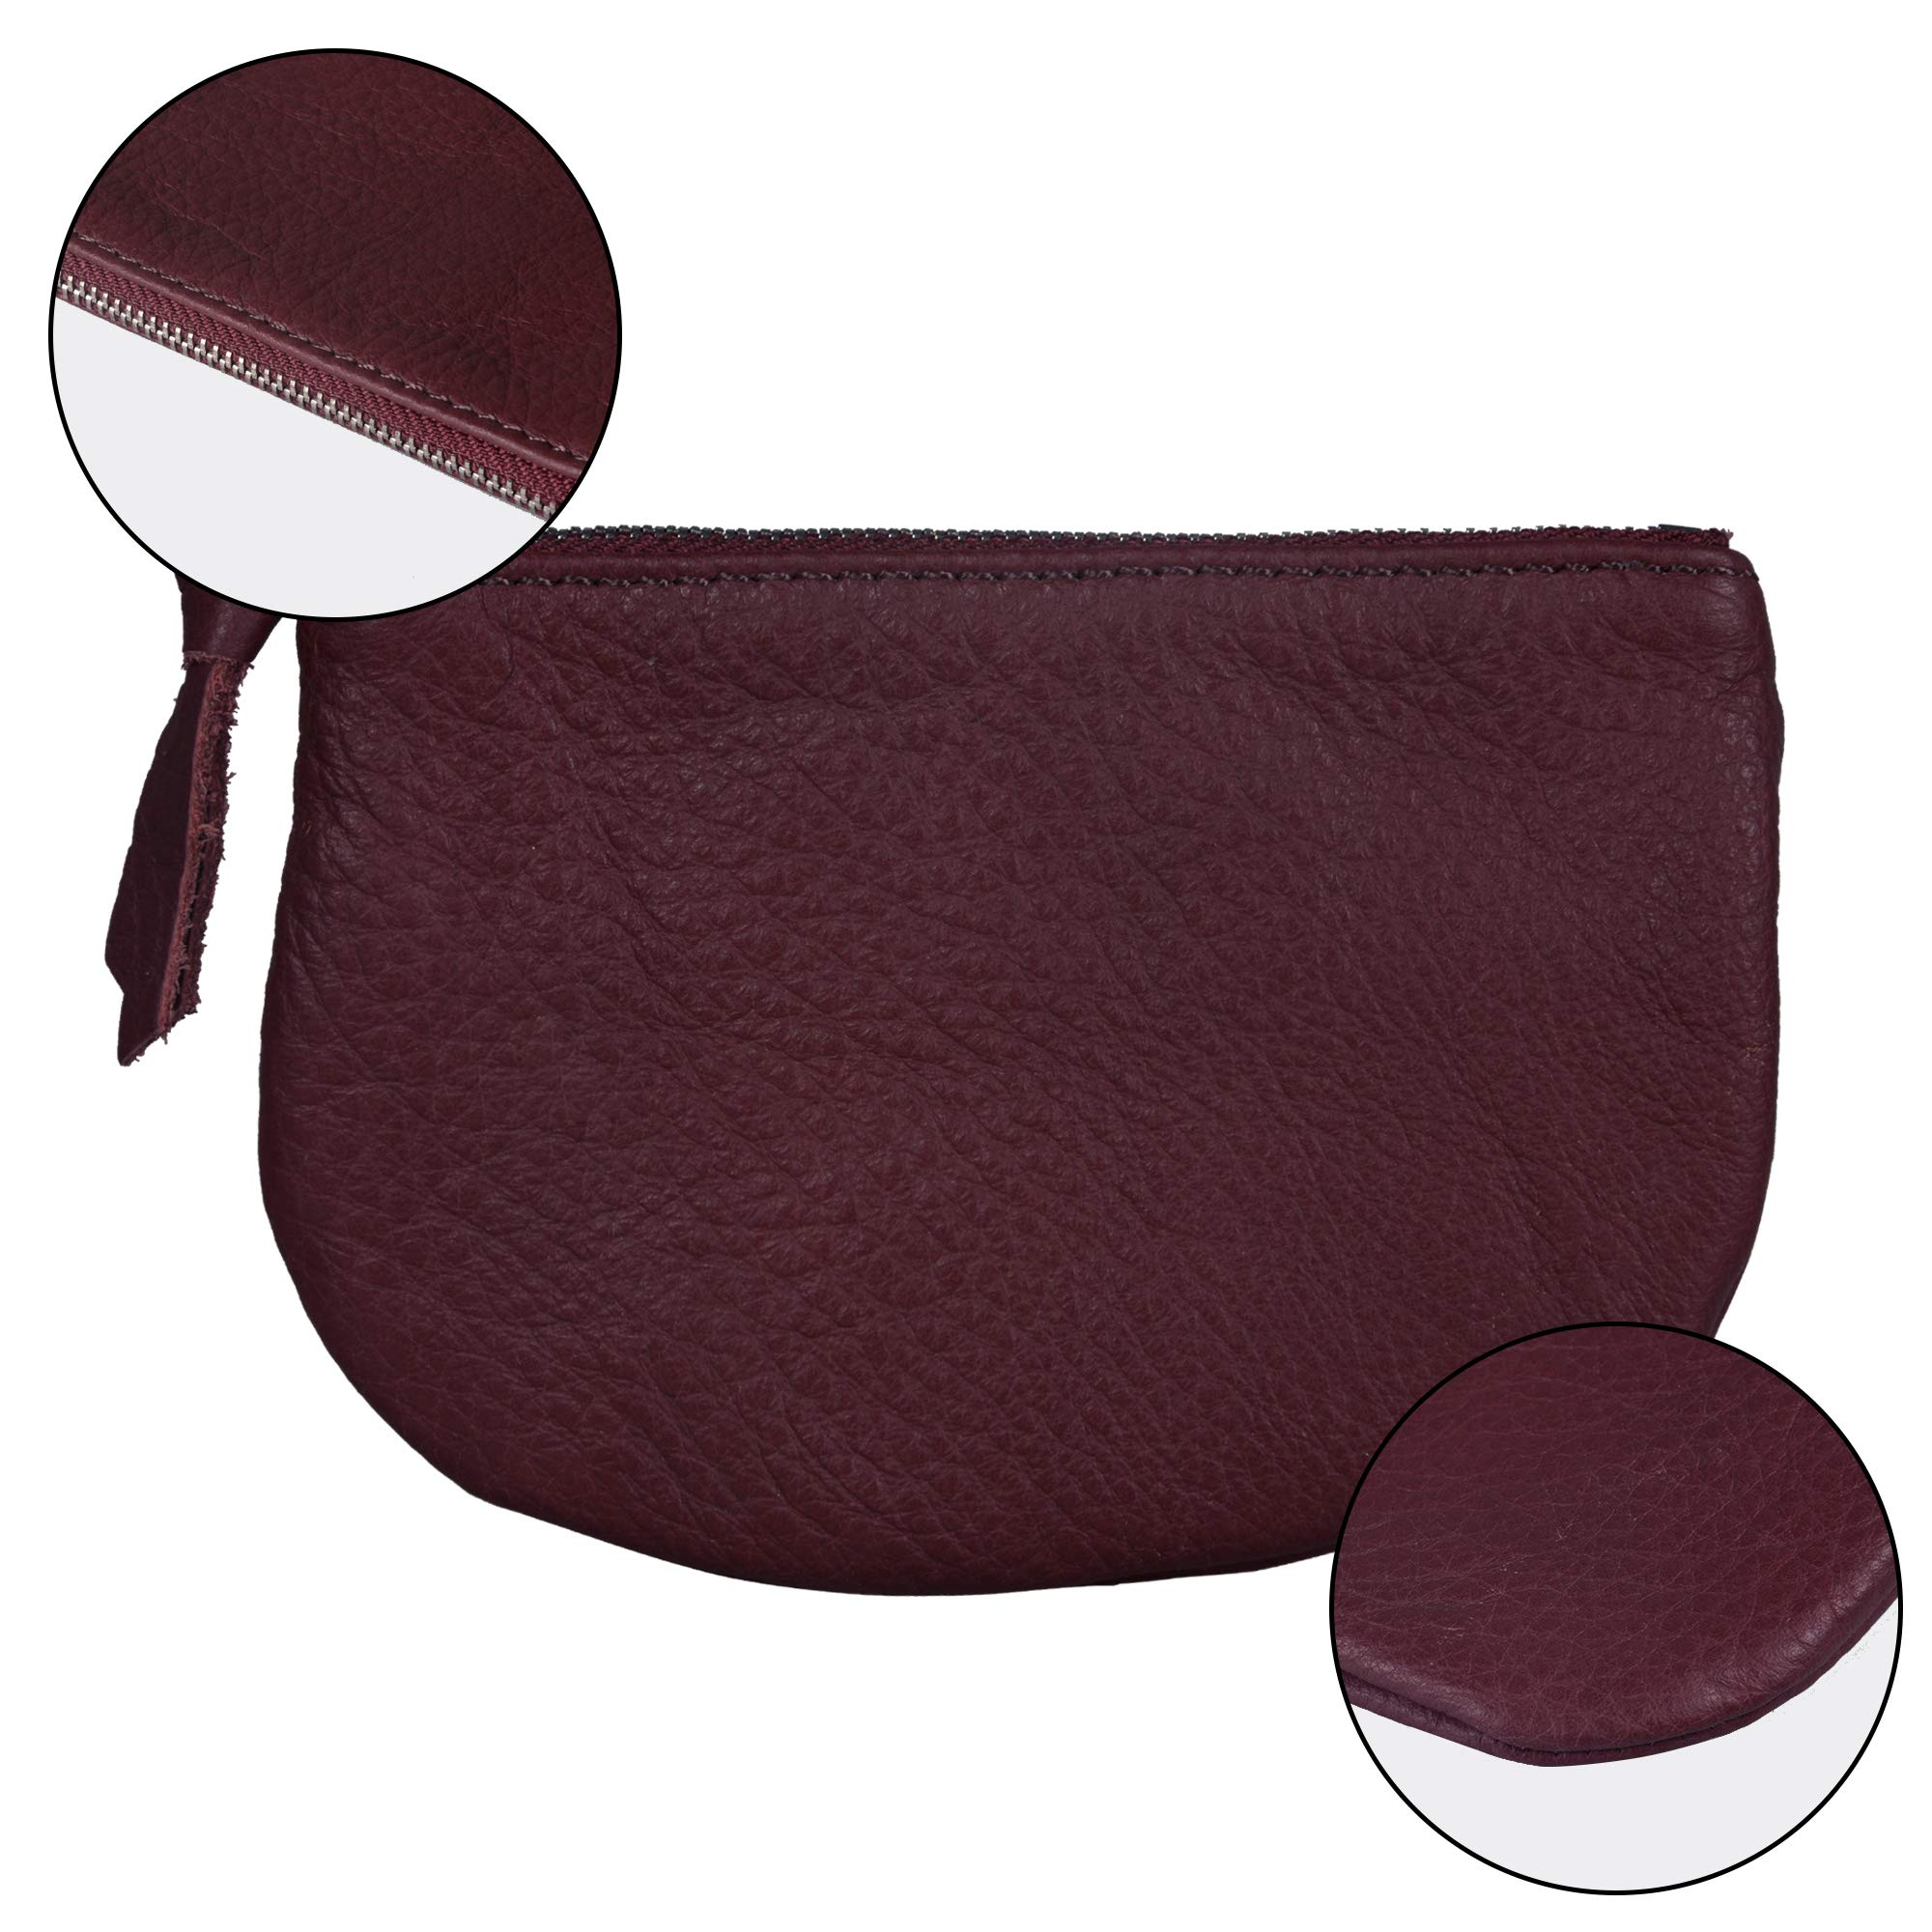 Befen Women Small Cute Leather Wallet, Soft Mini Coin Purse with Card Slots for Women and Teens Girls (Burgundy Coin Purse) by befen (Image #3)